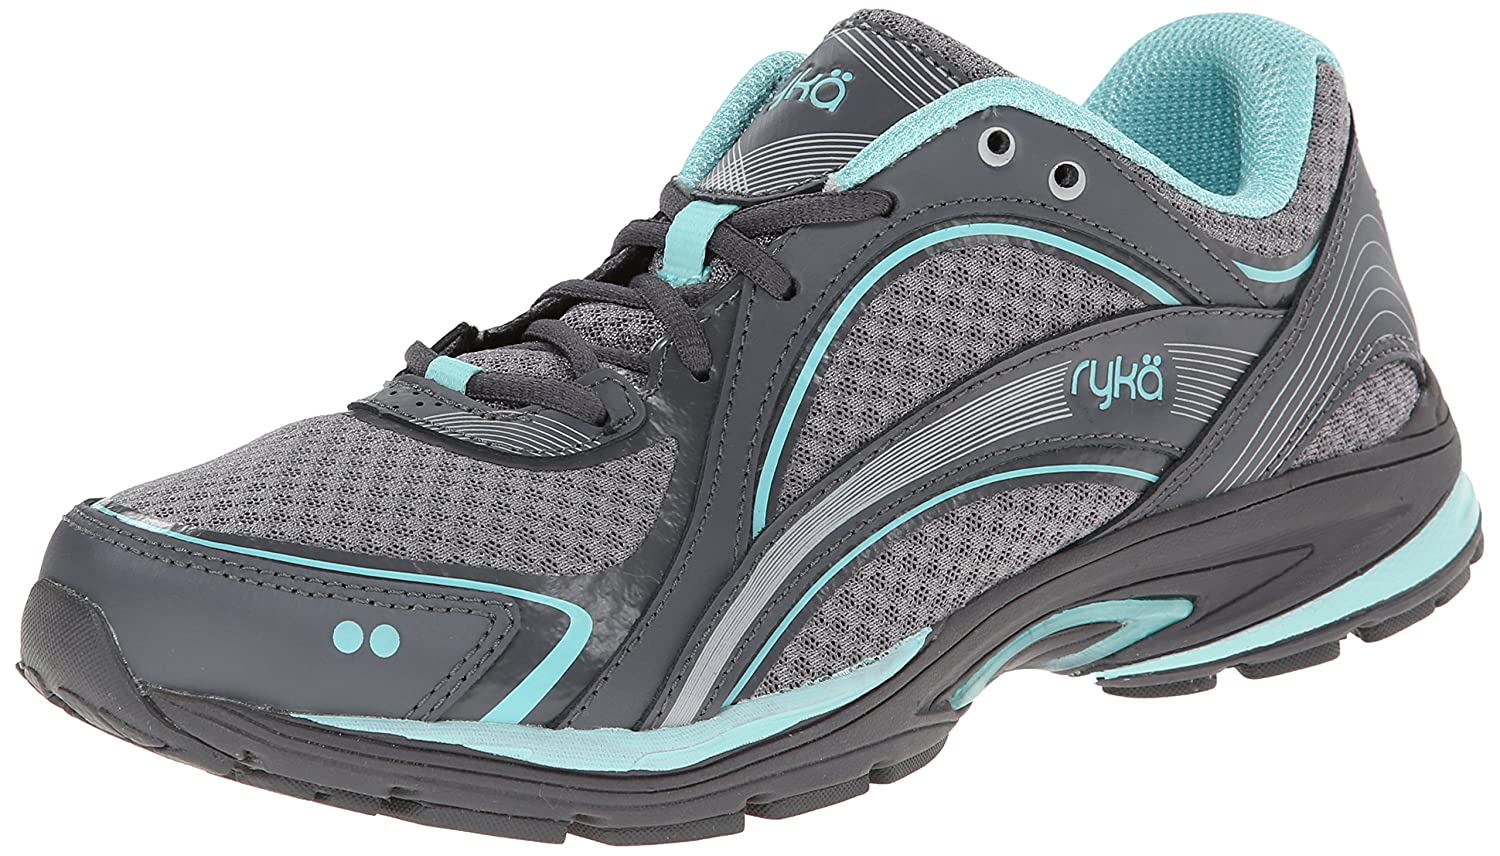 Ryka Women's Sky Walking Shoe B00MF15XVI 9 B(M) US|Frost Grey/Aqua Sky/Iron Grey